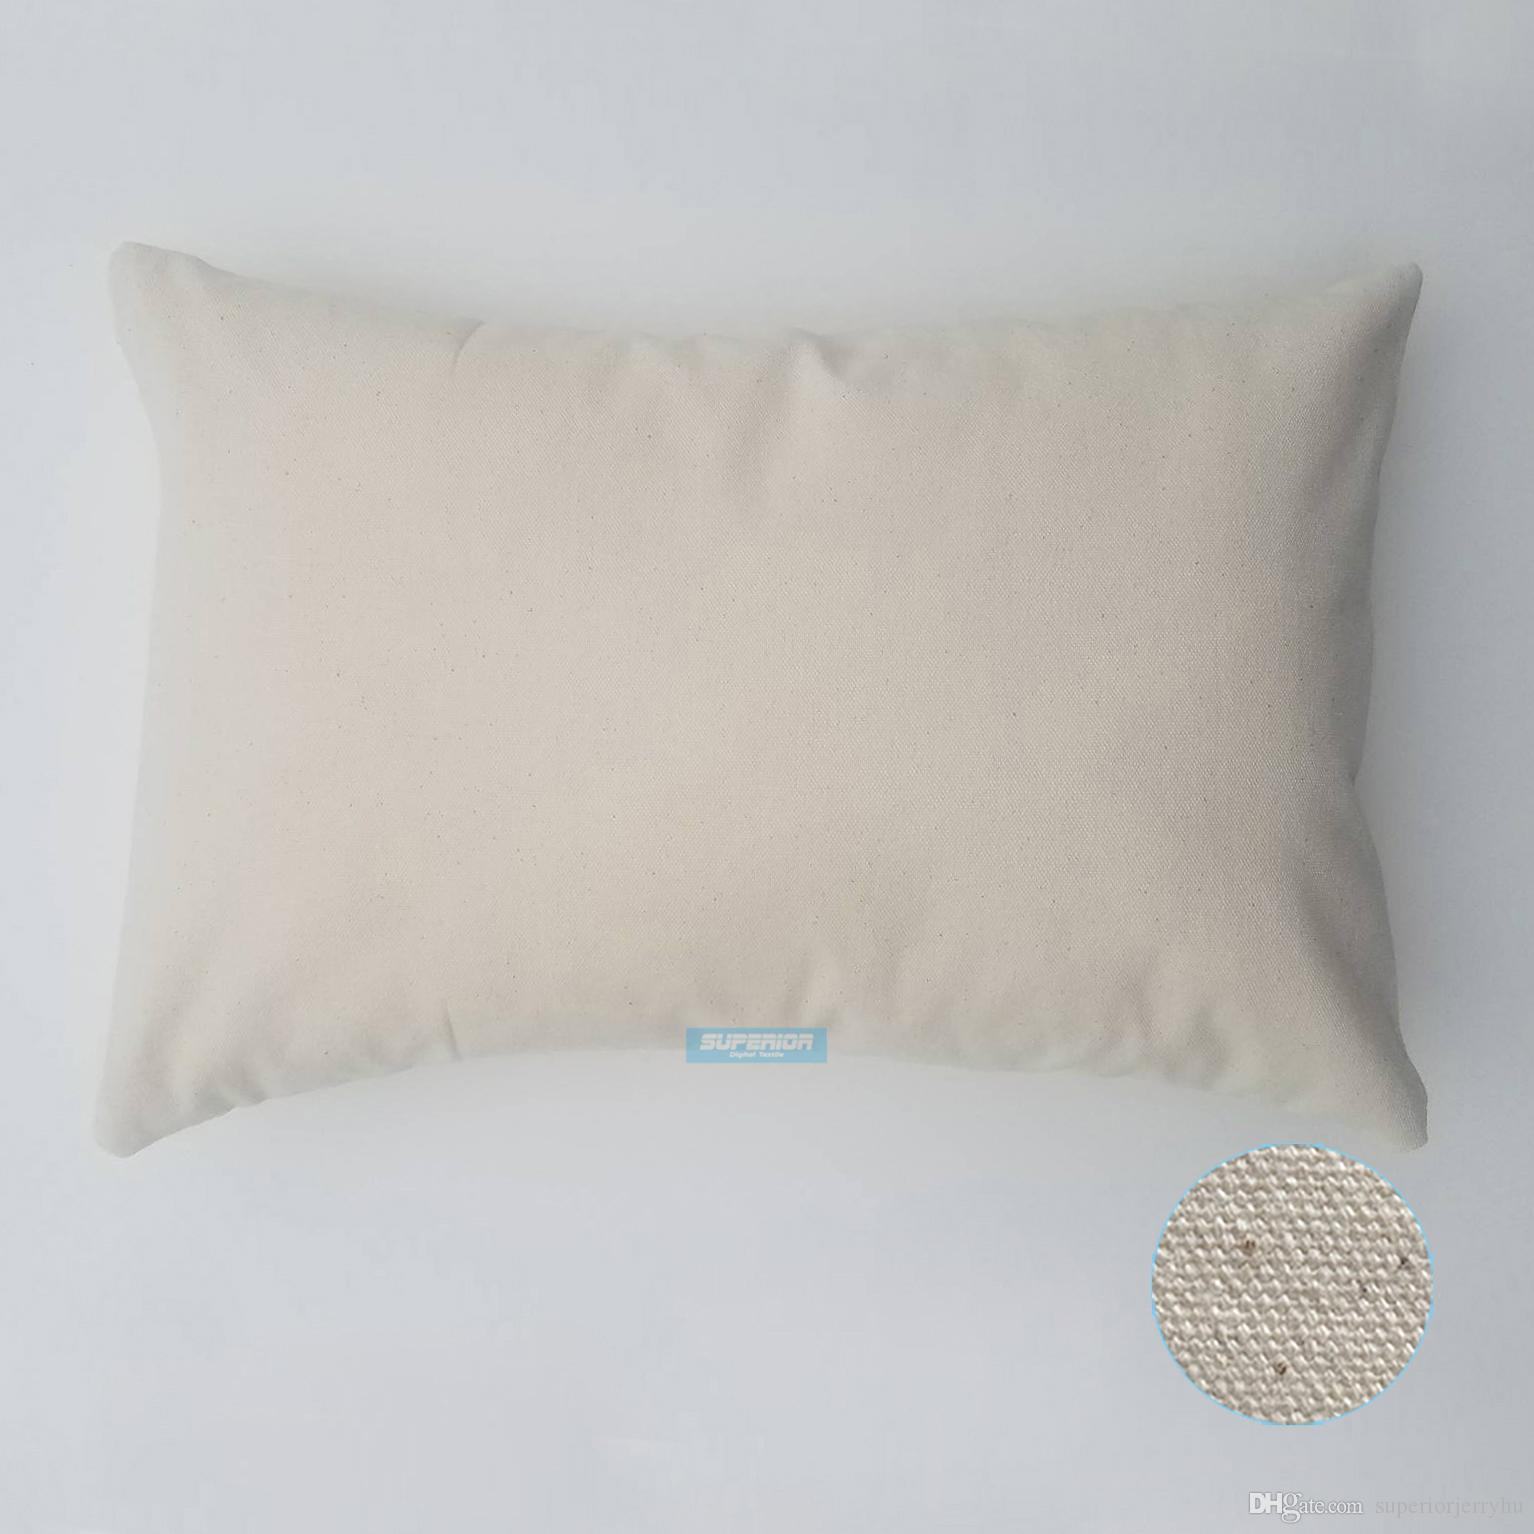 Cotton Canvas Throw Pillow Cover 18x18 Wholesale Blank 10 oz Lot of 20 Blanks